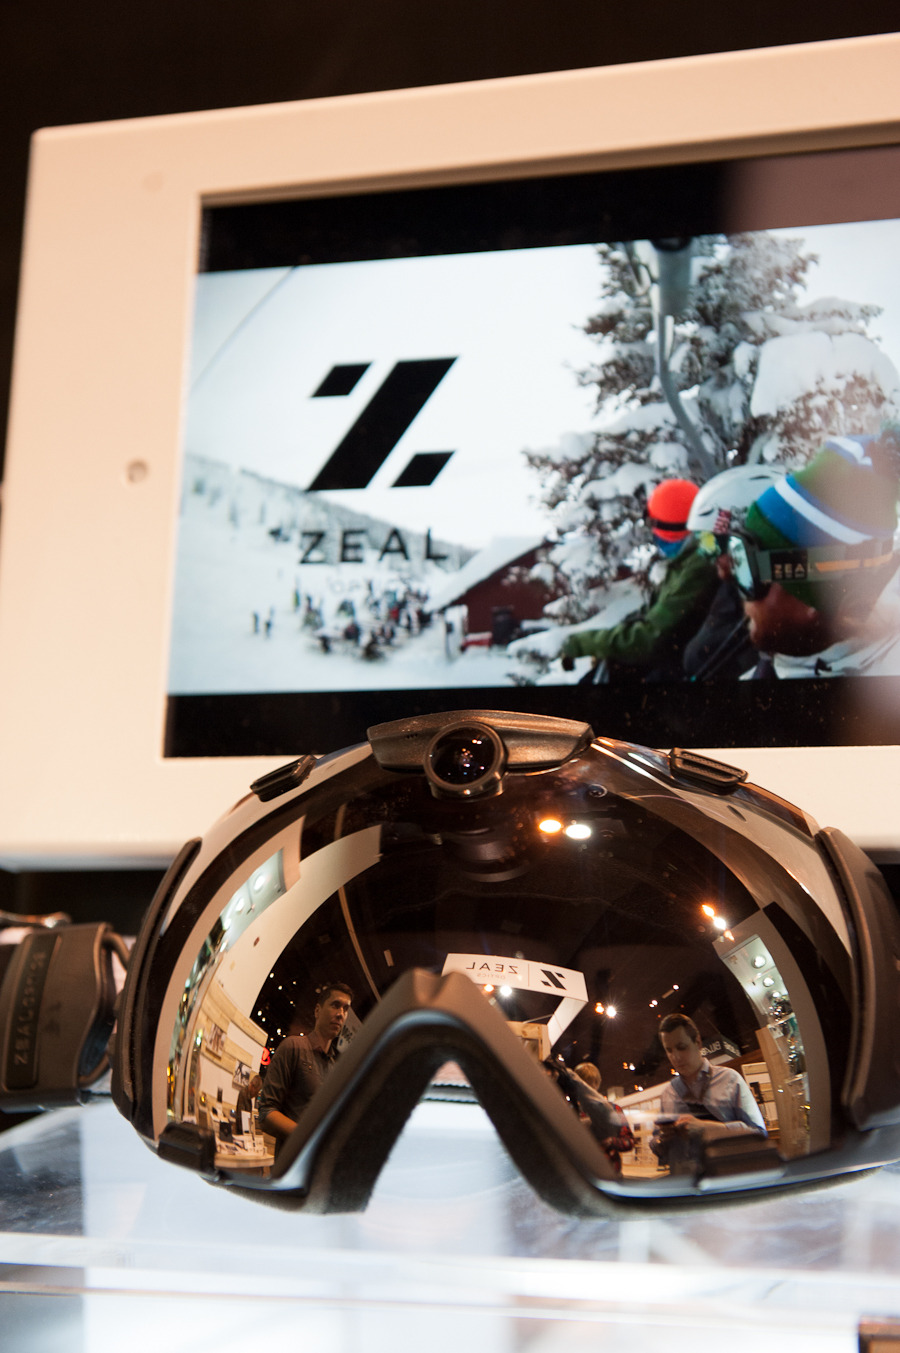 The impressive HD Camera Goggle from Zeal Optics shoots in 1080 HD at 120 FPS and takes 12 megapixel photos. The goggles come with an 8GB memory card and a mirrored lens, with the option to purchase a low light lens separately.  - ©Ashleigh Miller Photography